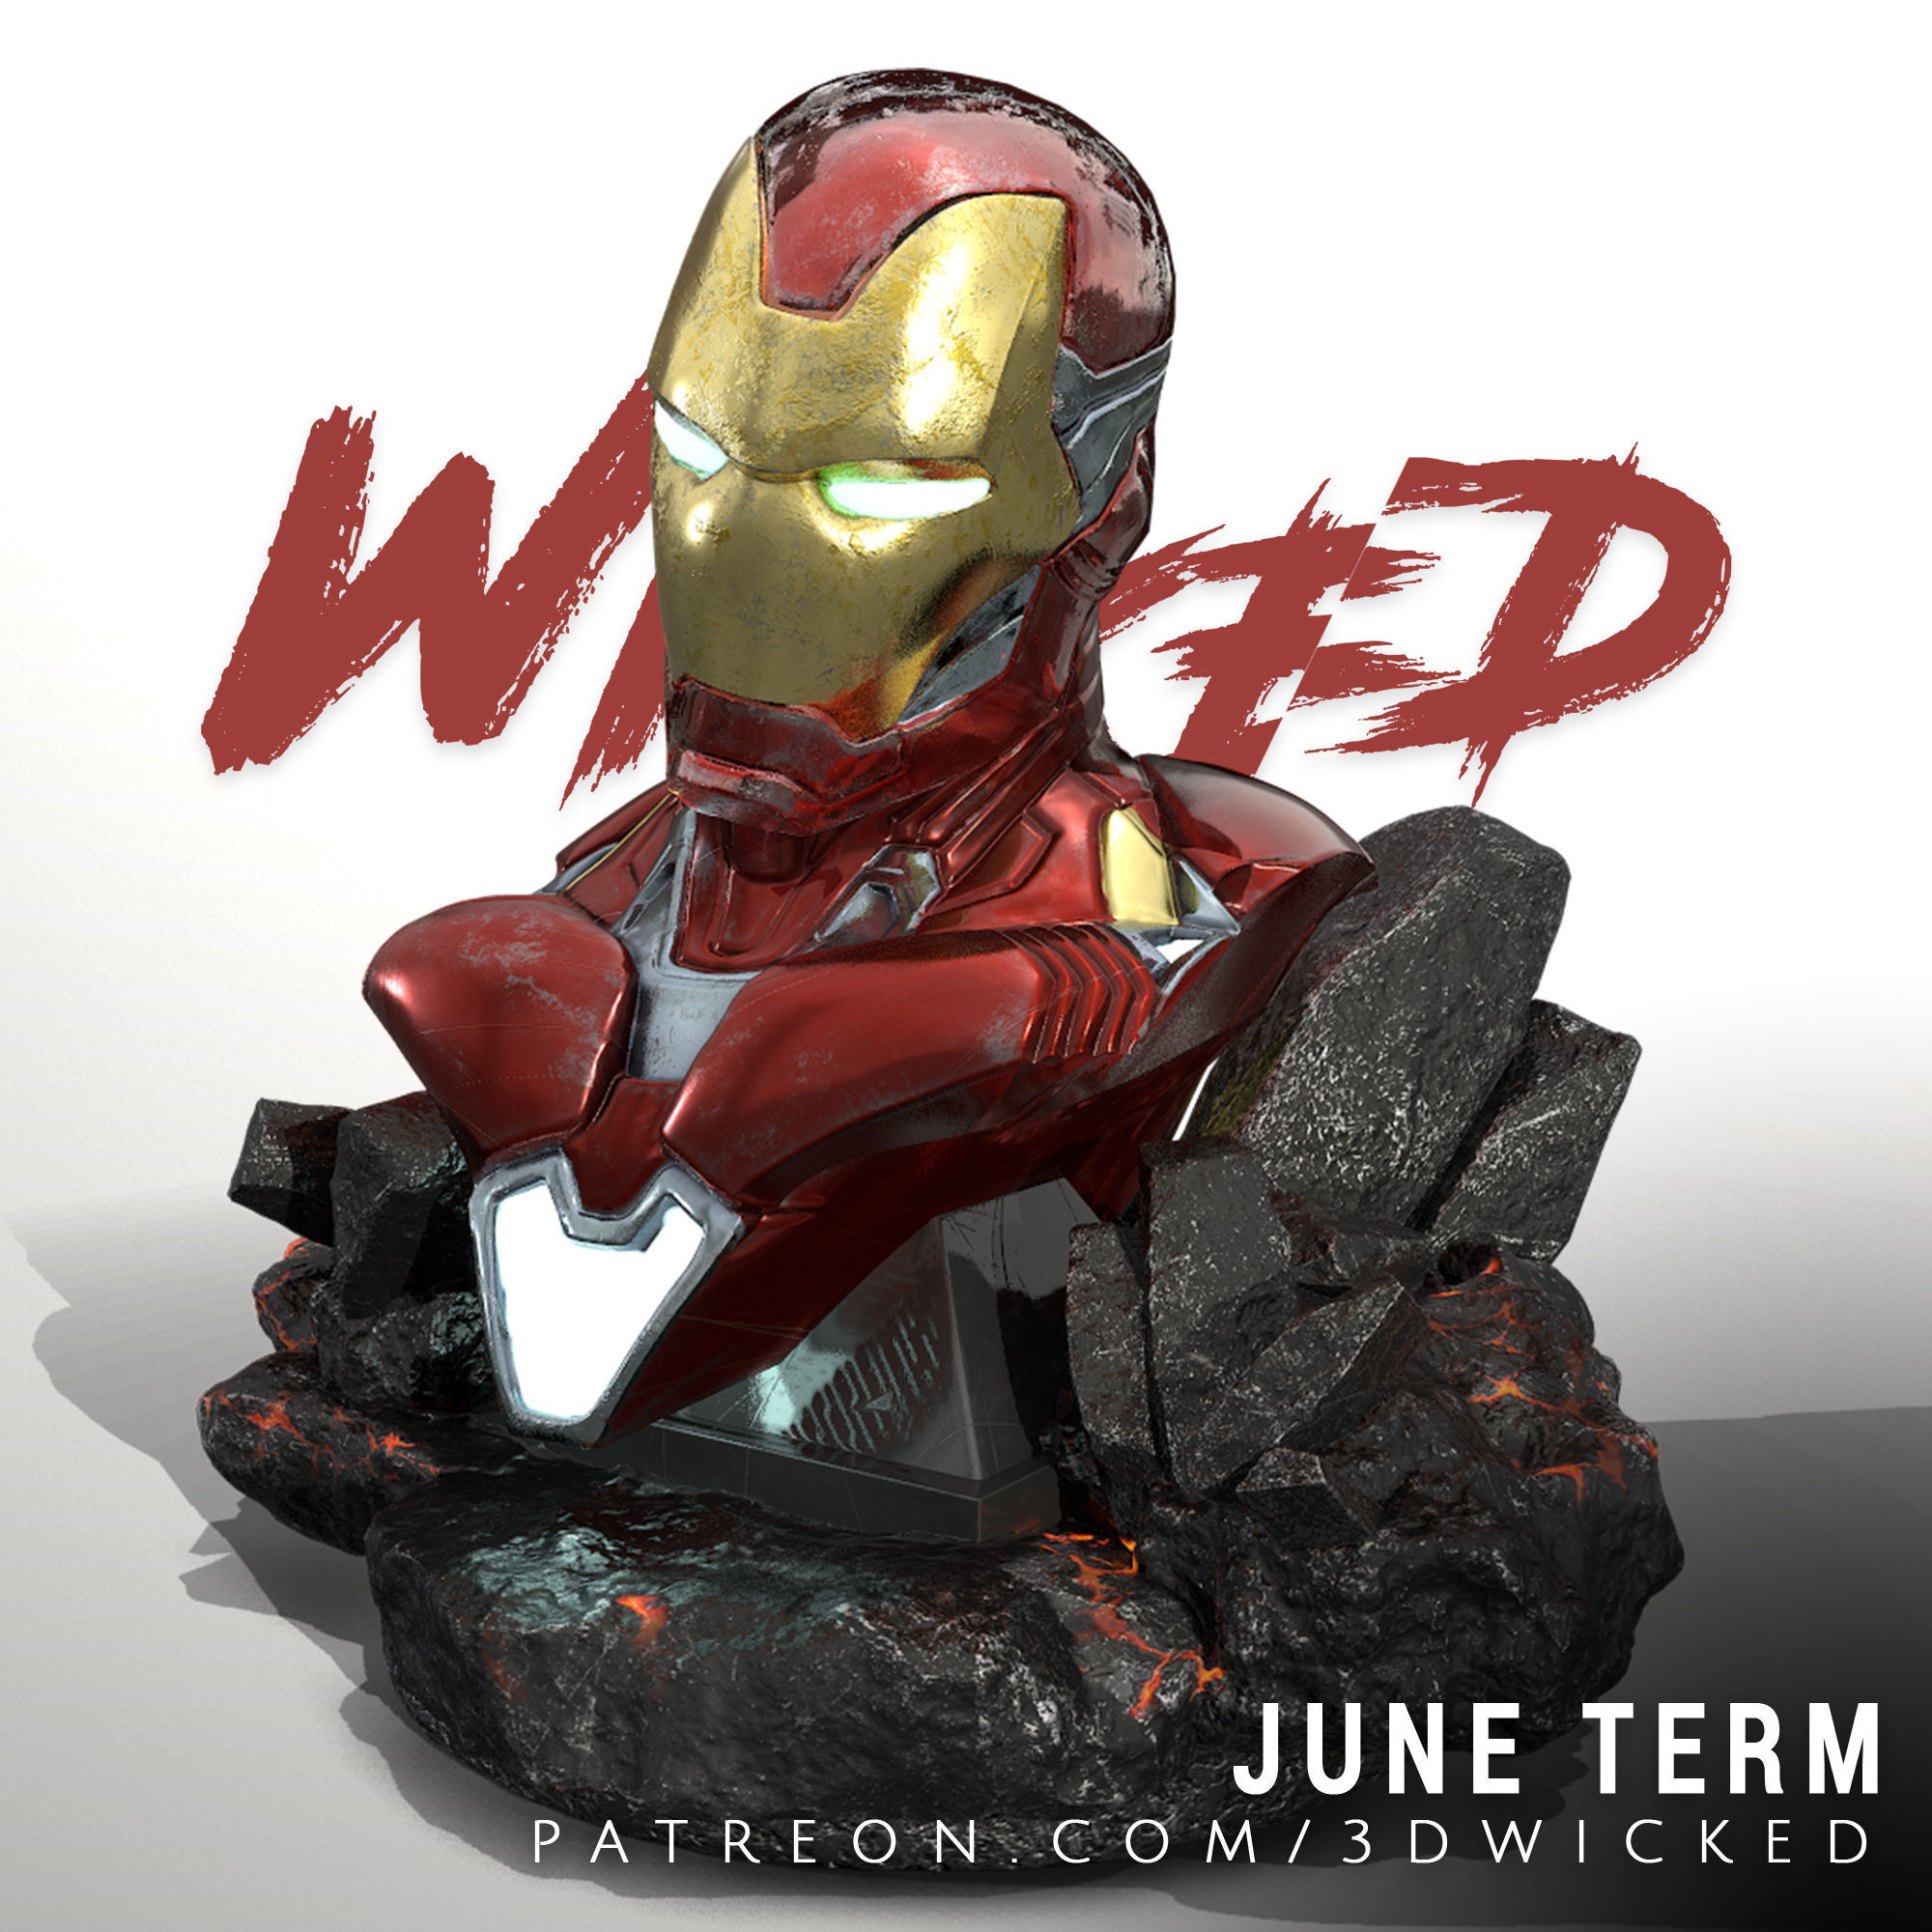 Wicked Marvel Avengers Iron man 3d Bust STL ready for printing